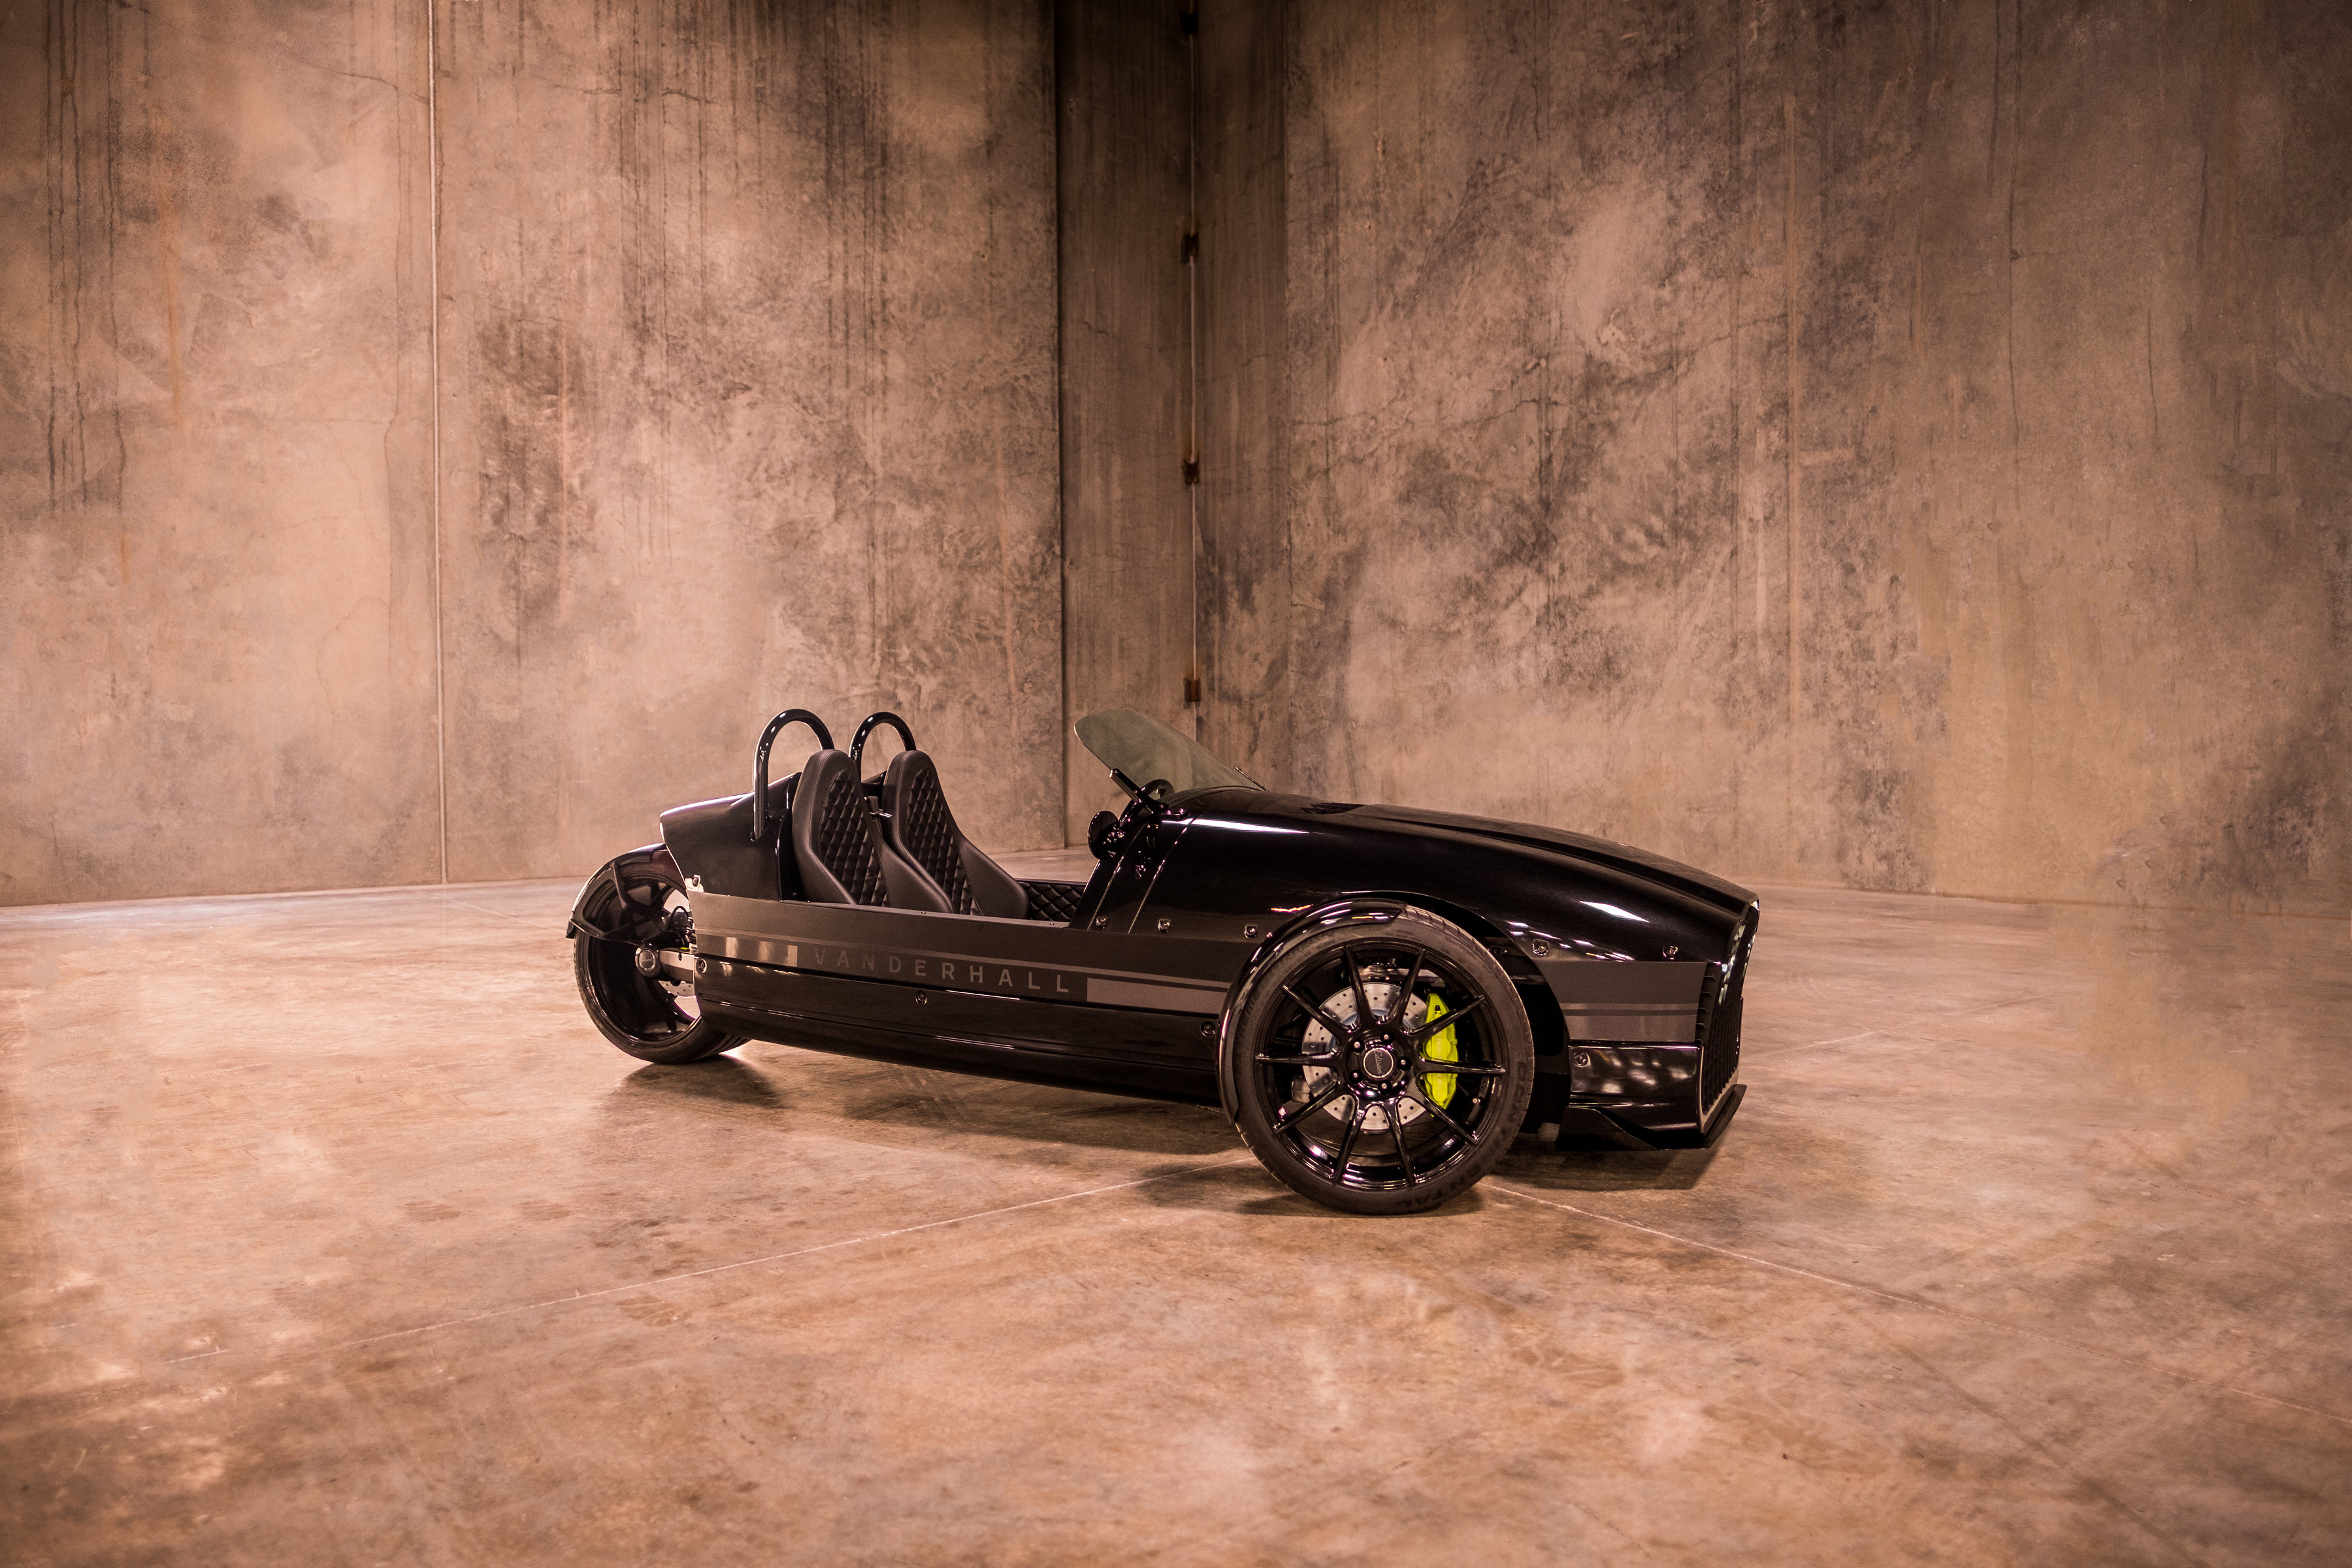 A new all-electric $35,000 three-wheeler with 'over 200